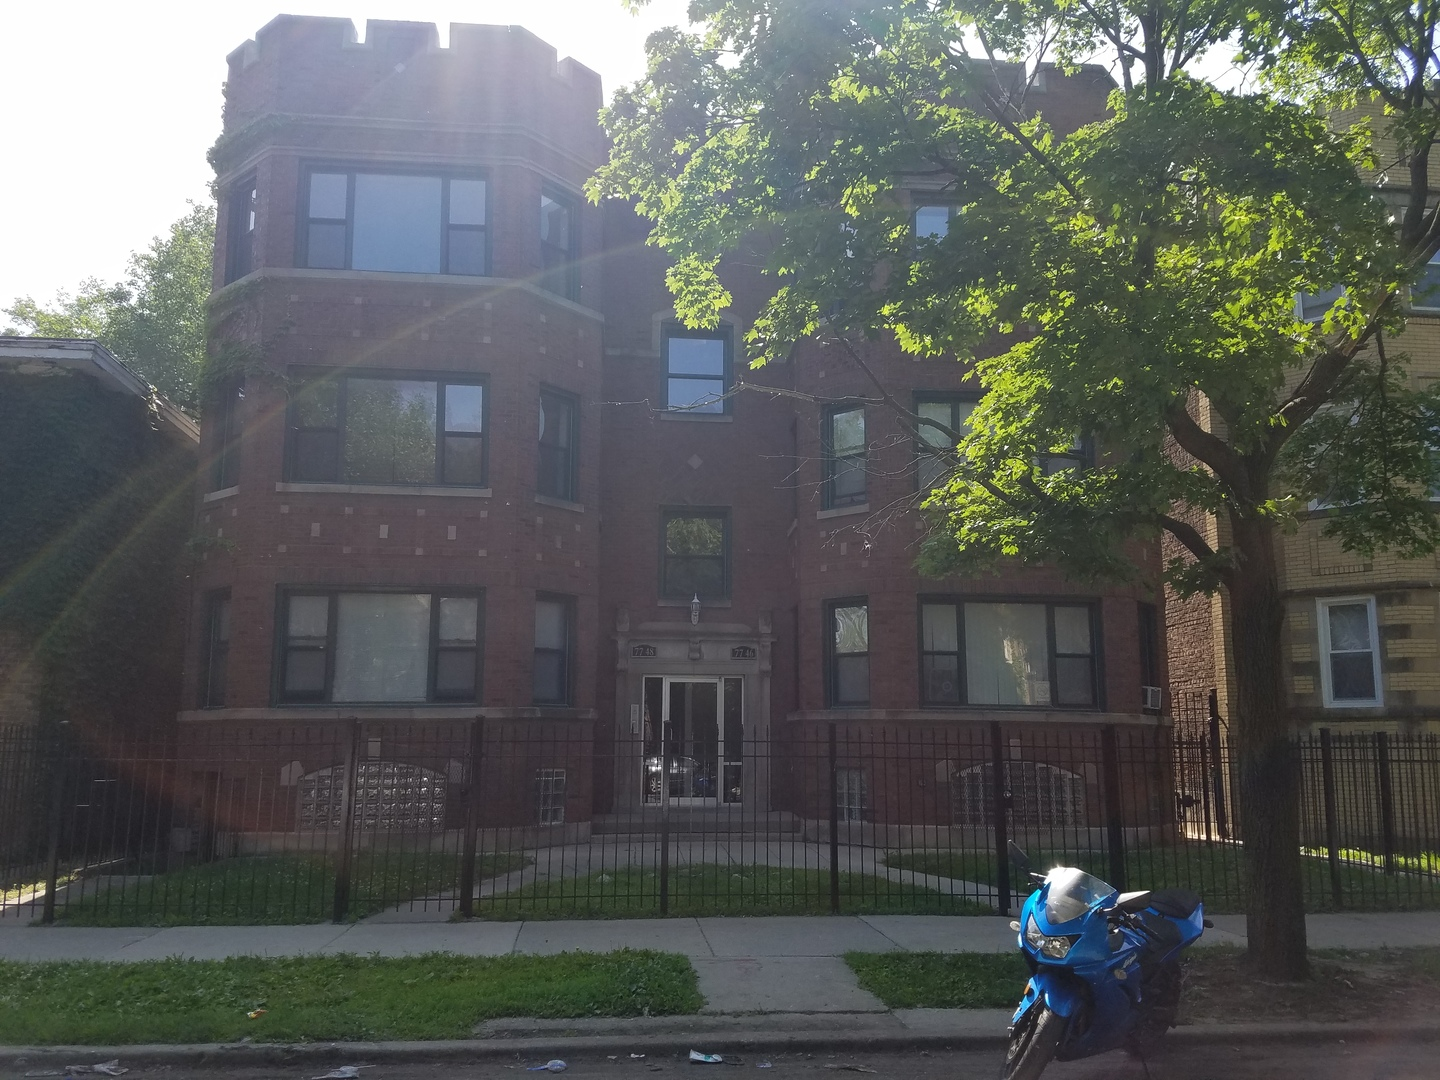 7748 Yates, Chicago, Illinois 60649